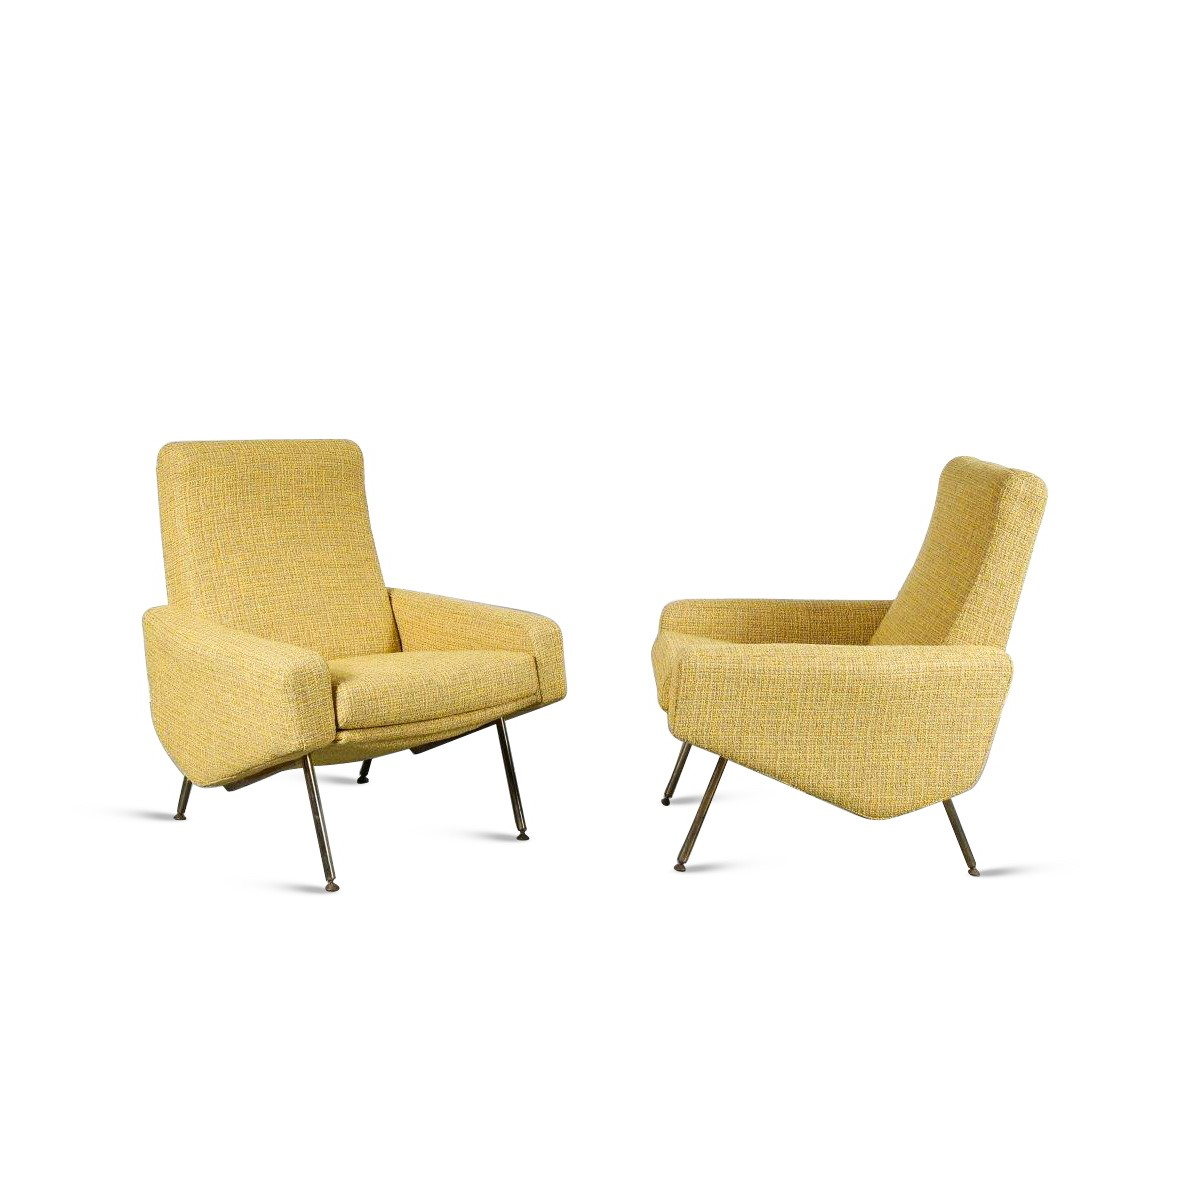 m22976 Pierre Guariche Lounge Chairs for Airborne, France 1960